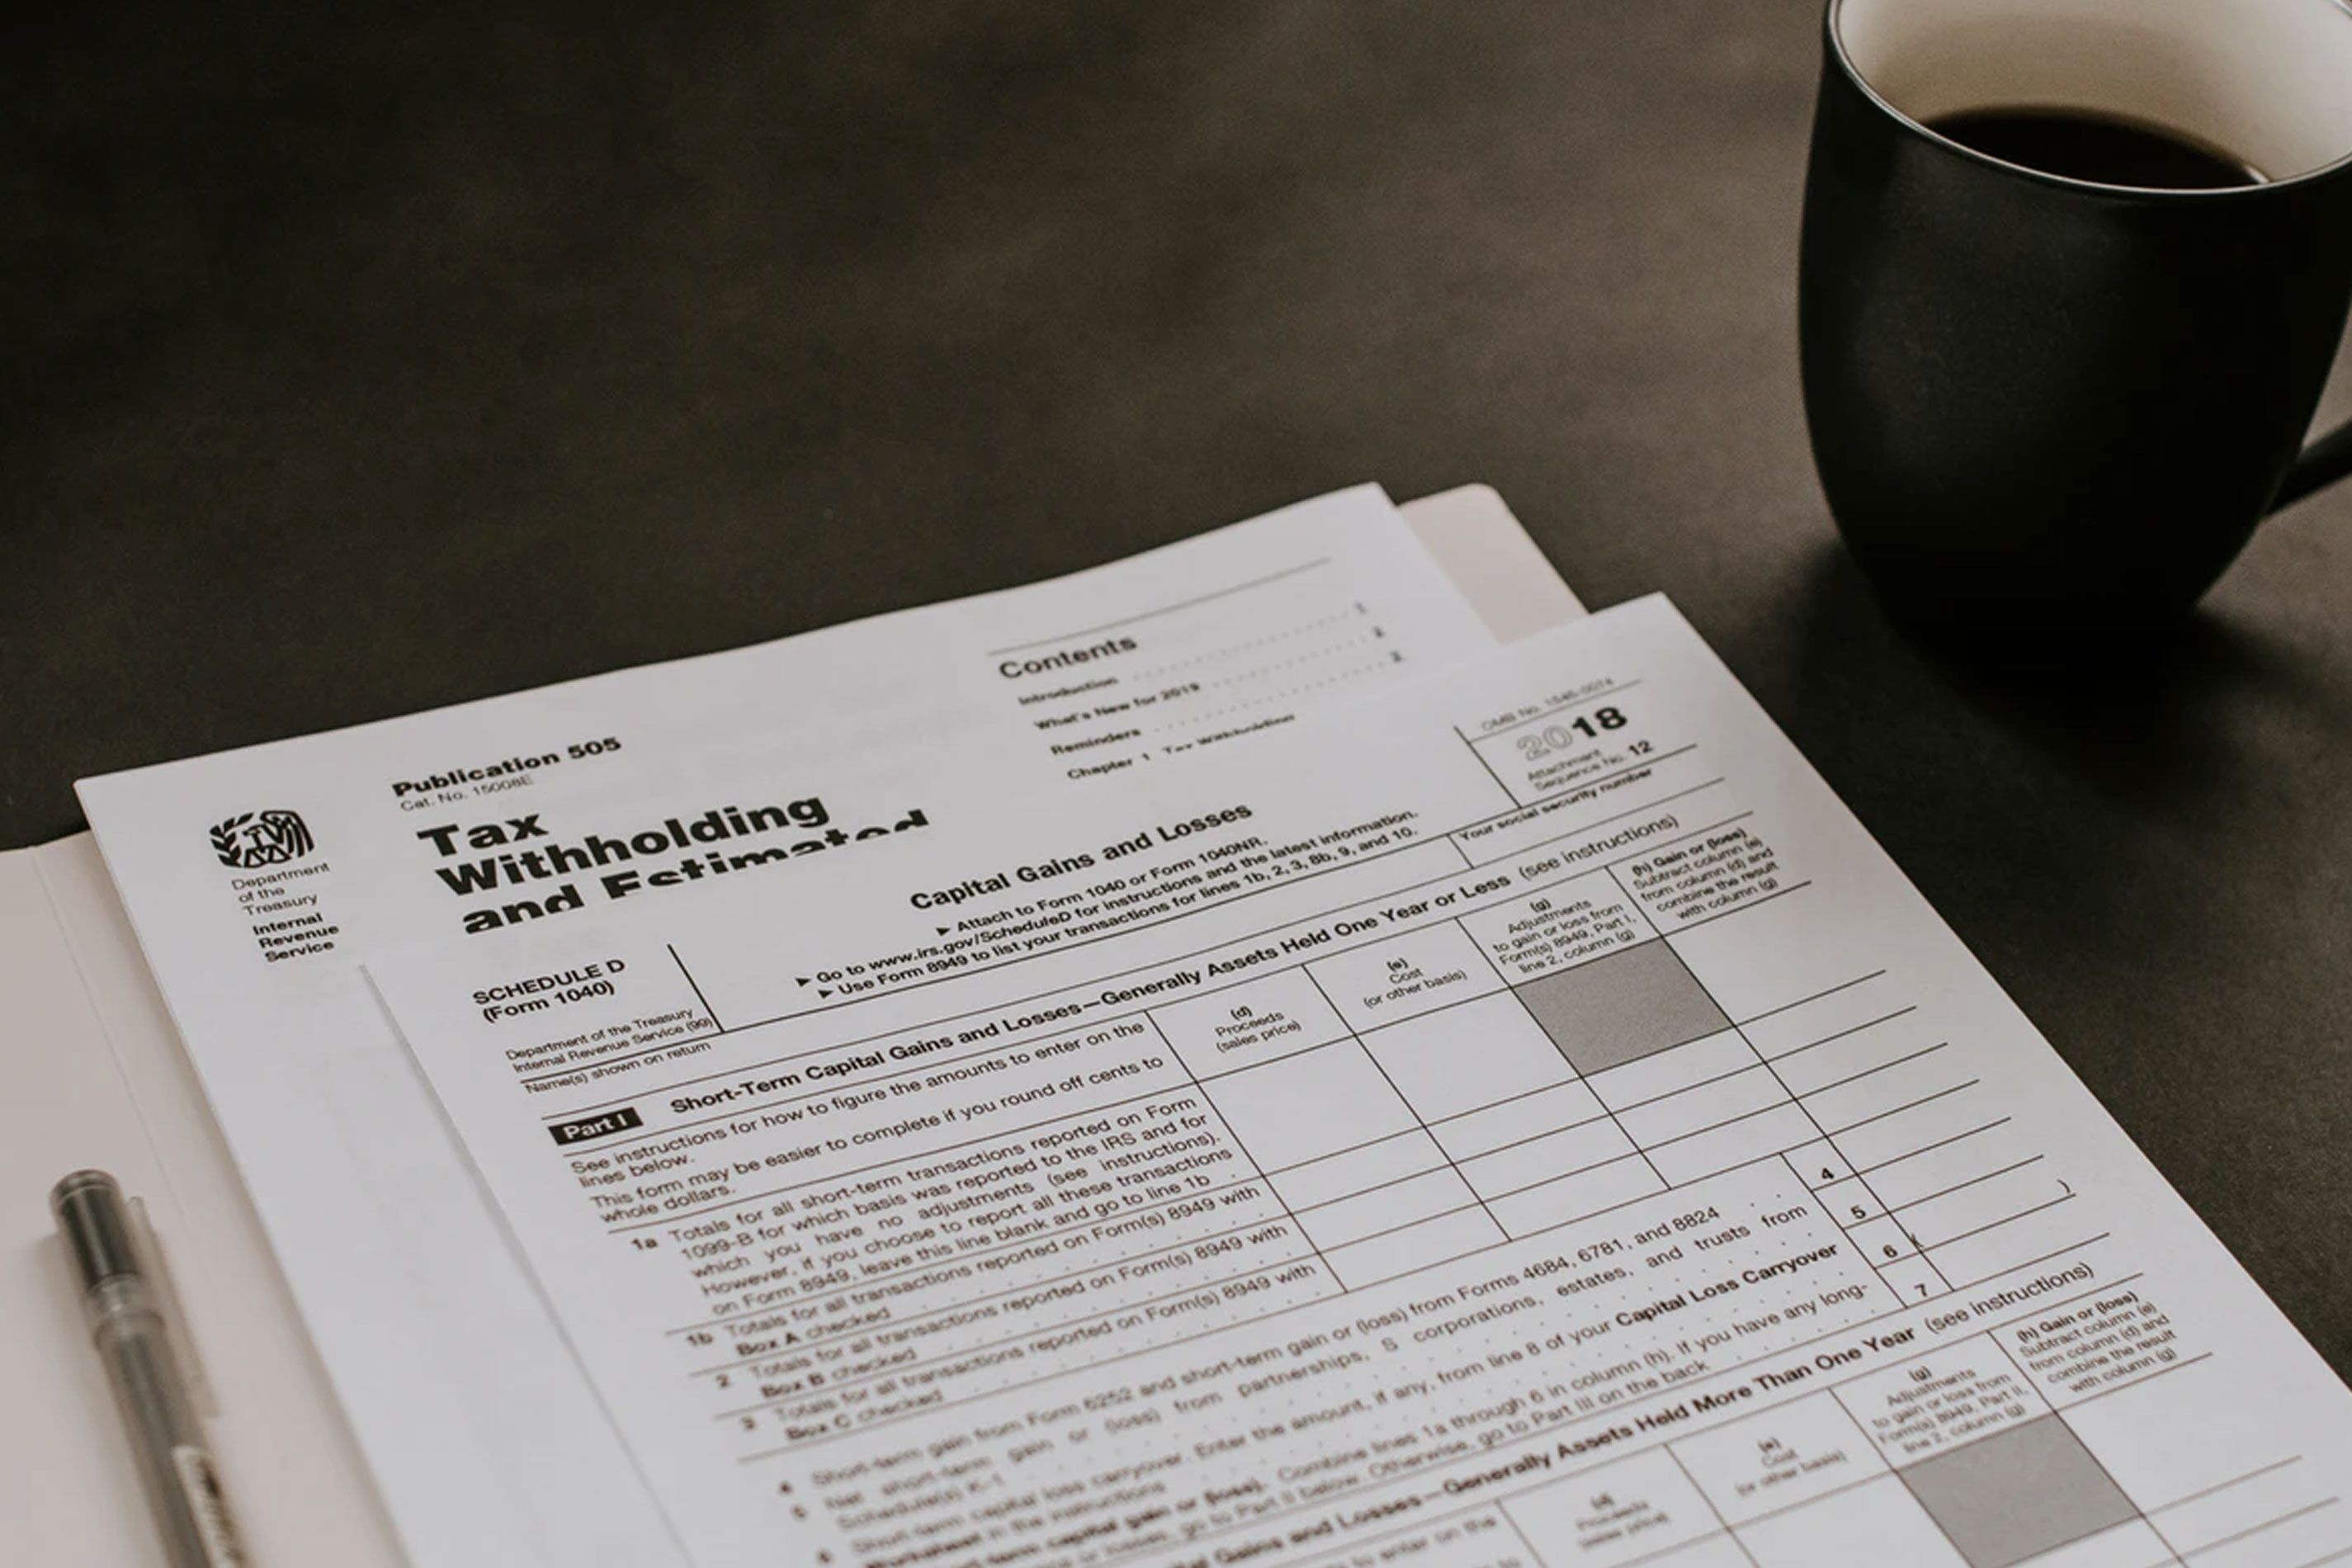 Episode 3: Keeping Up With Taxes